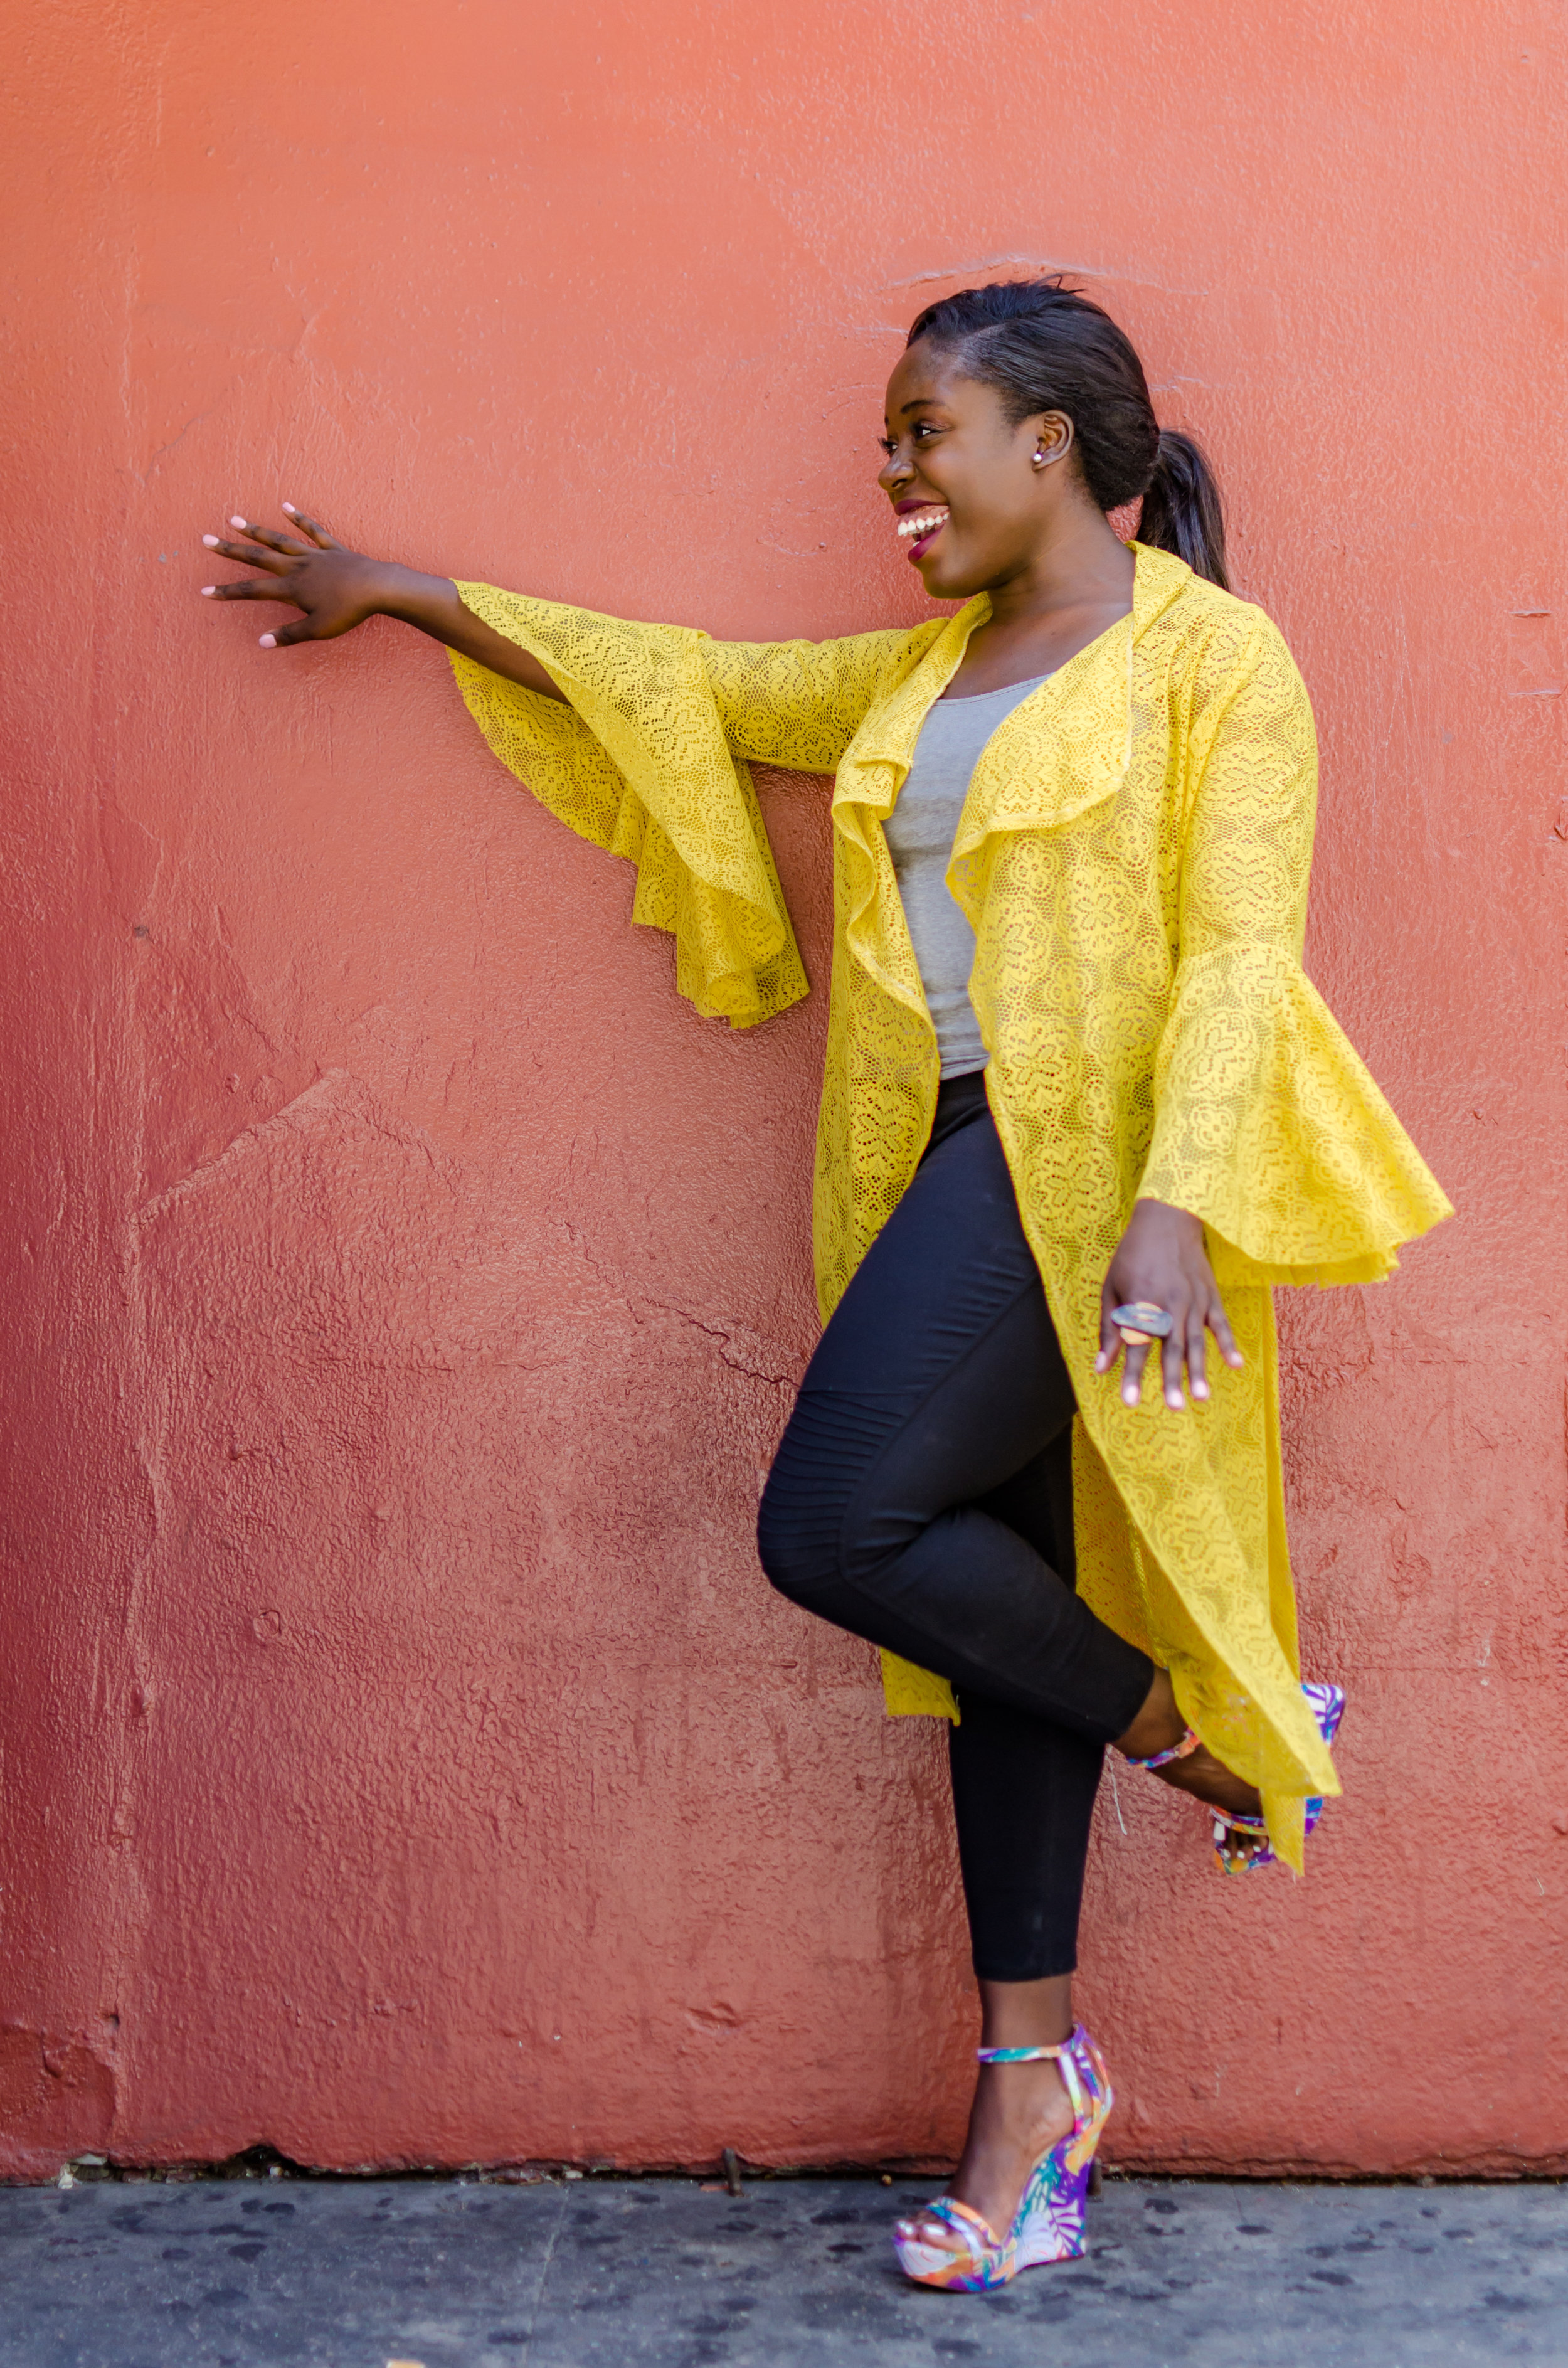 Designer Features - Click here to view television spots,interviews,blogs etc featuring Ngozika Okeke as a fashion designer,entrepreneur and TV personality.